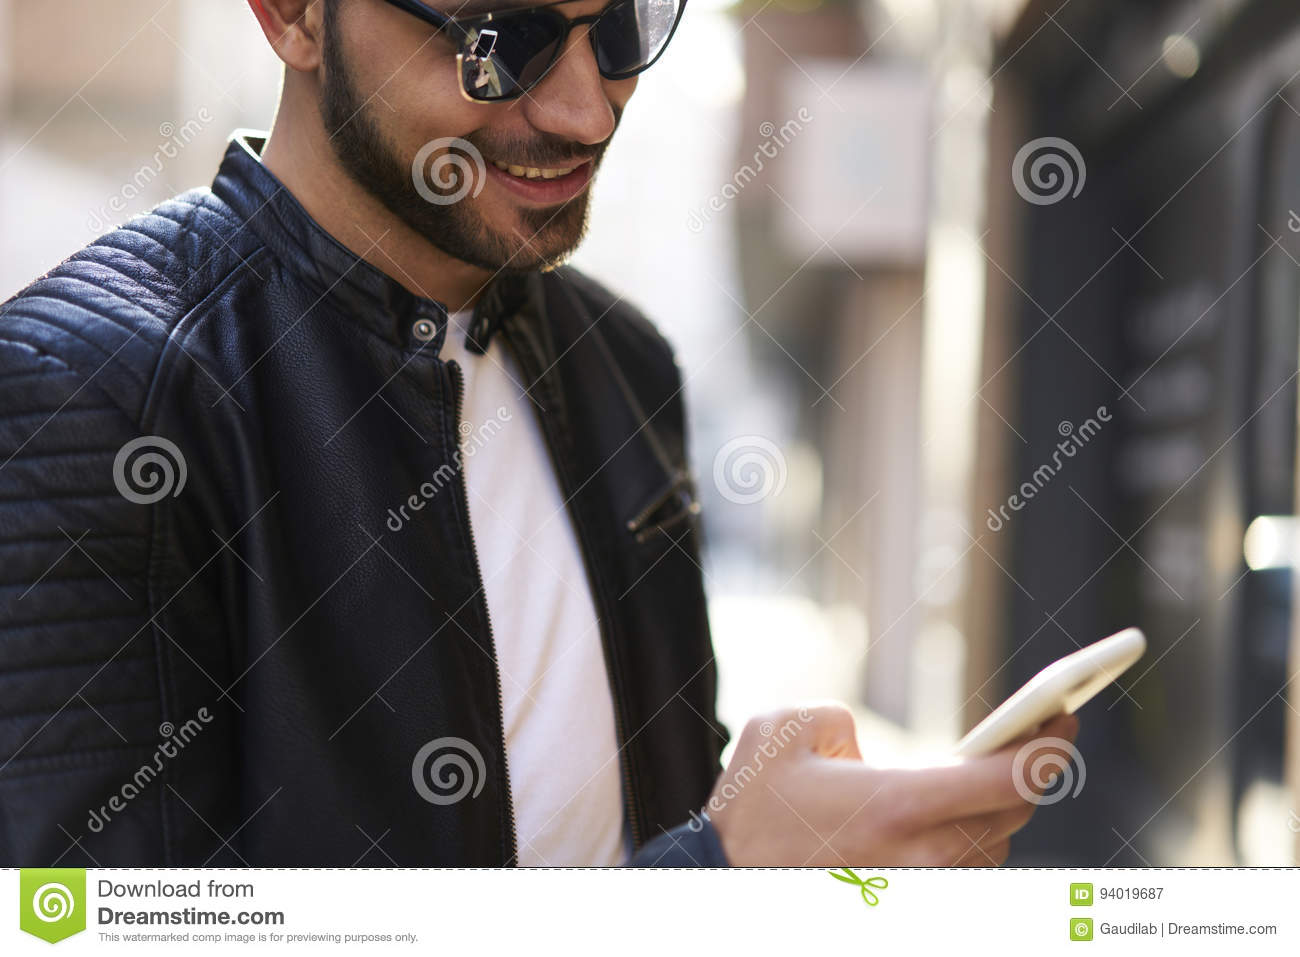 Brutal guy in a leather jacket and sunglasses